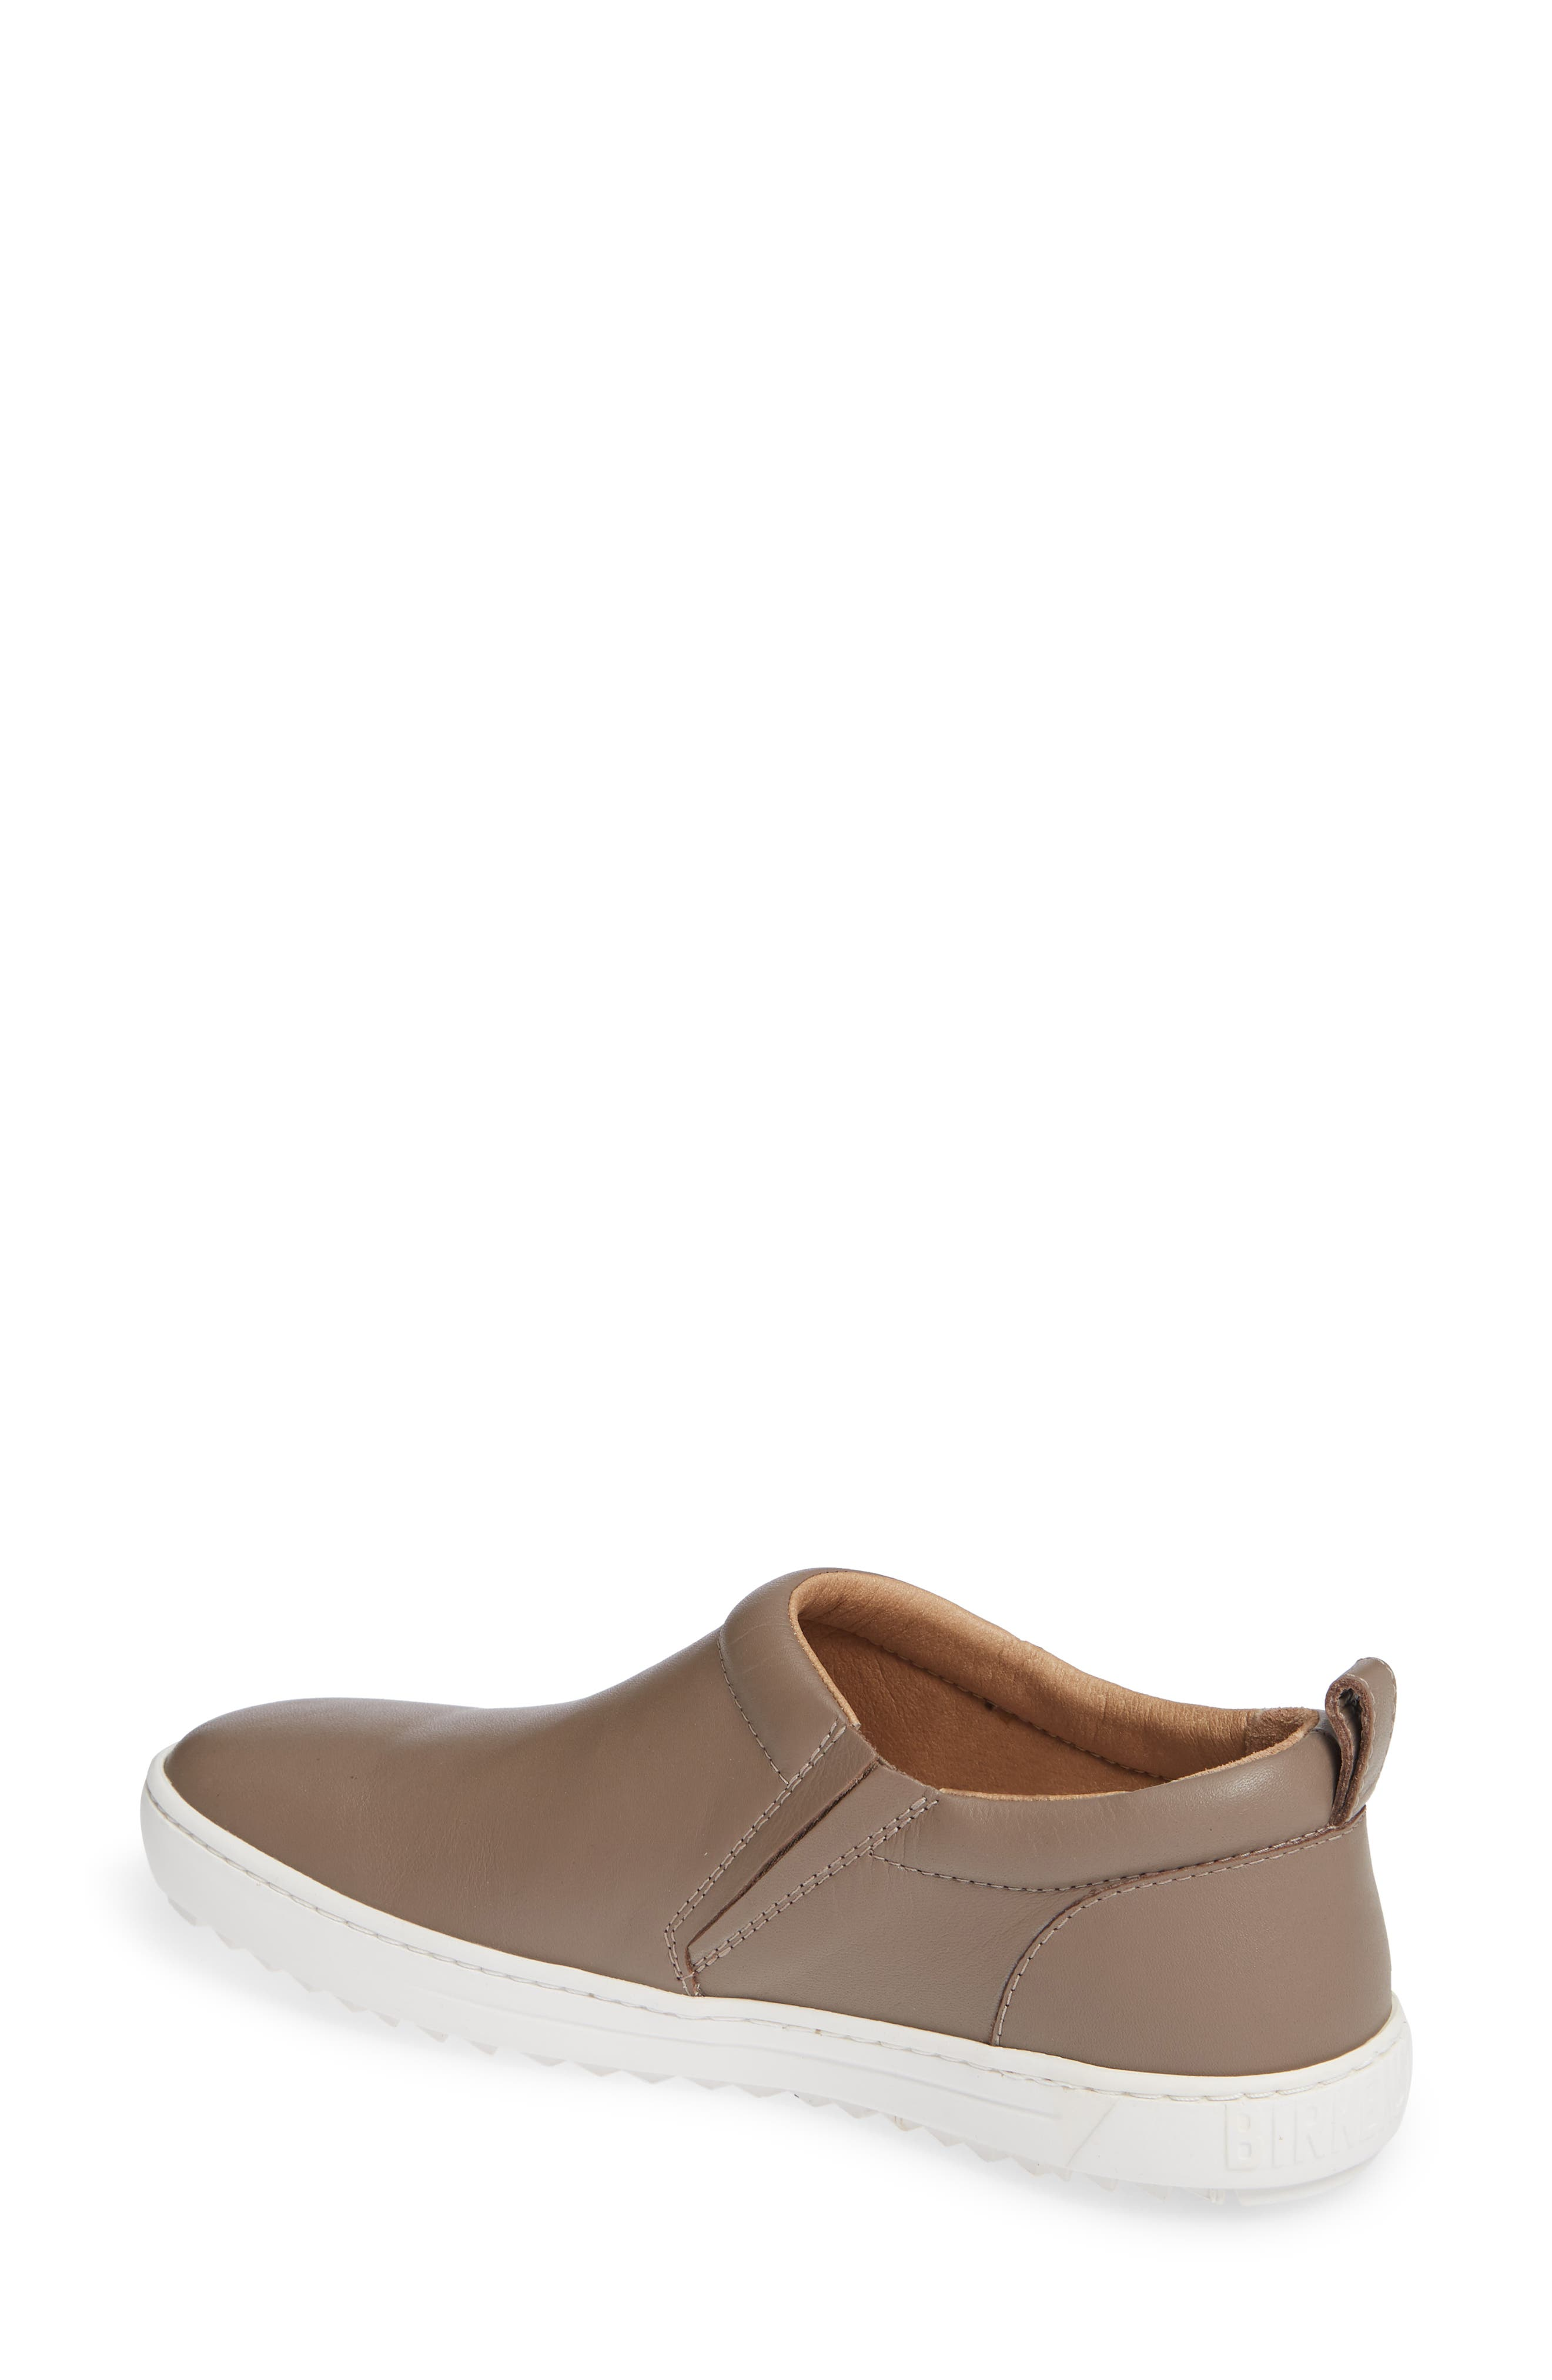 Rena Slip-On Sneaker,                             Alternate thumbnail 2, color,                             TAUPE LEATHER